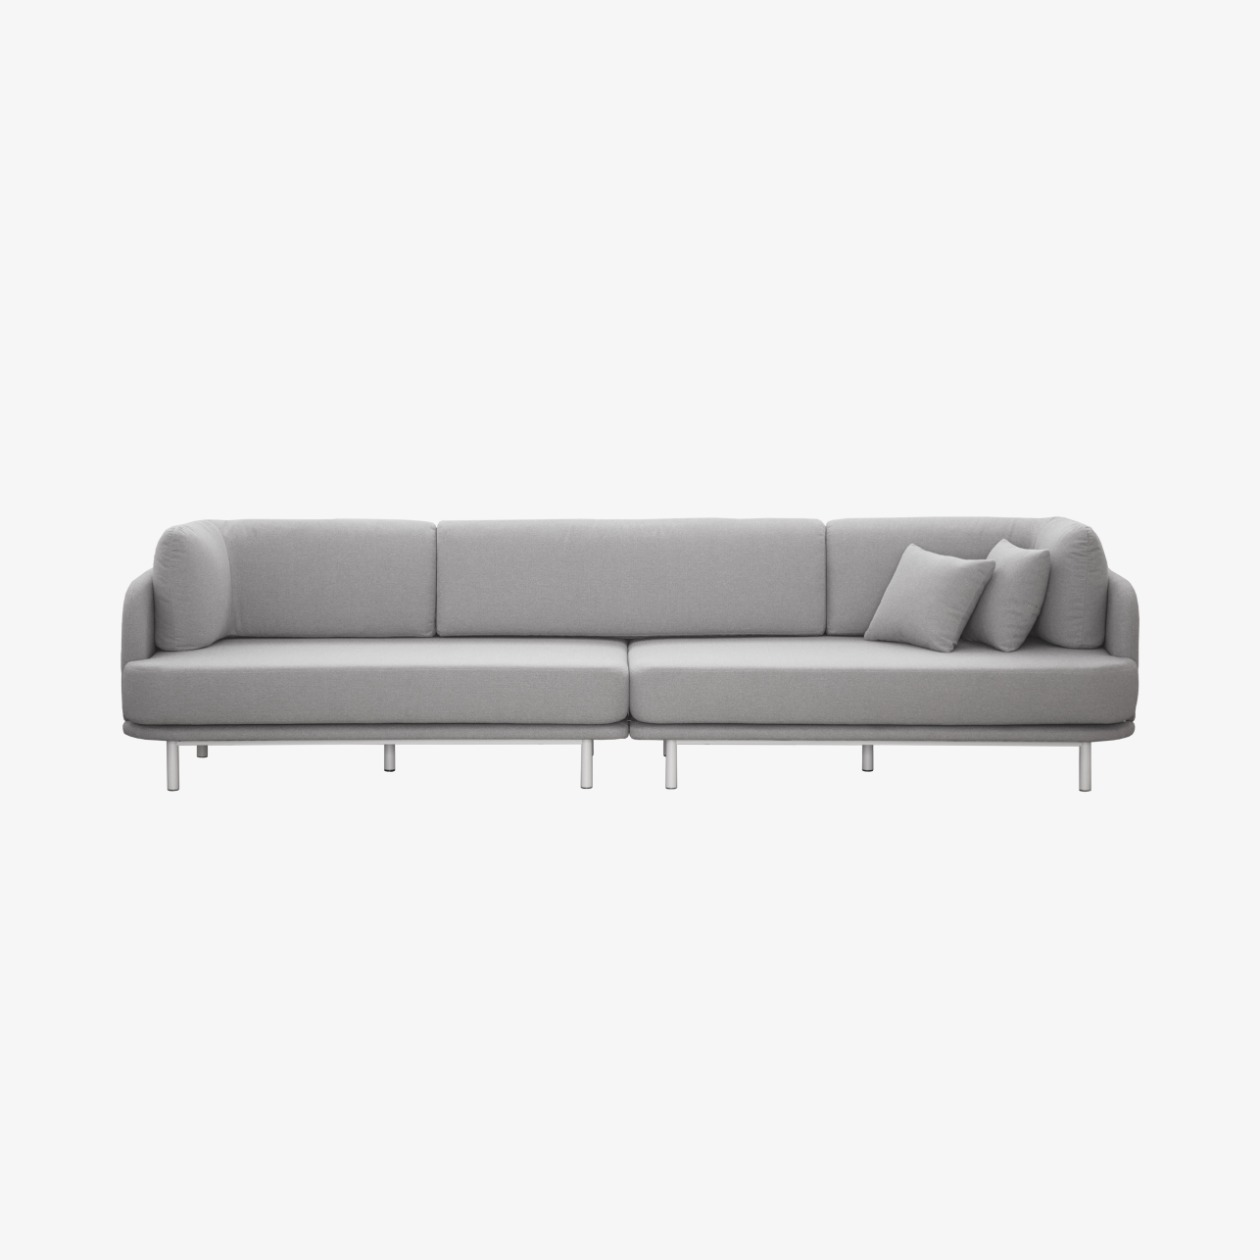 LAYER SOFA 5